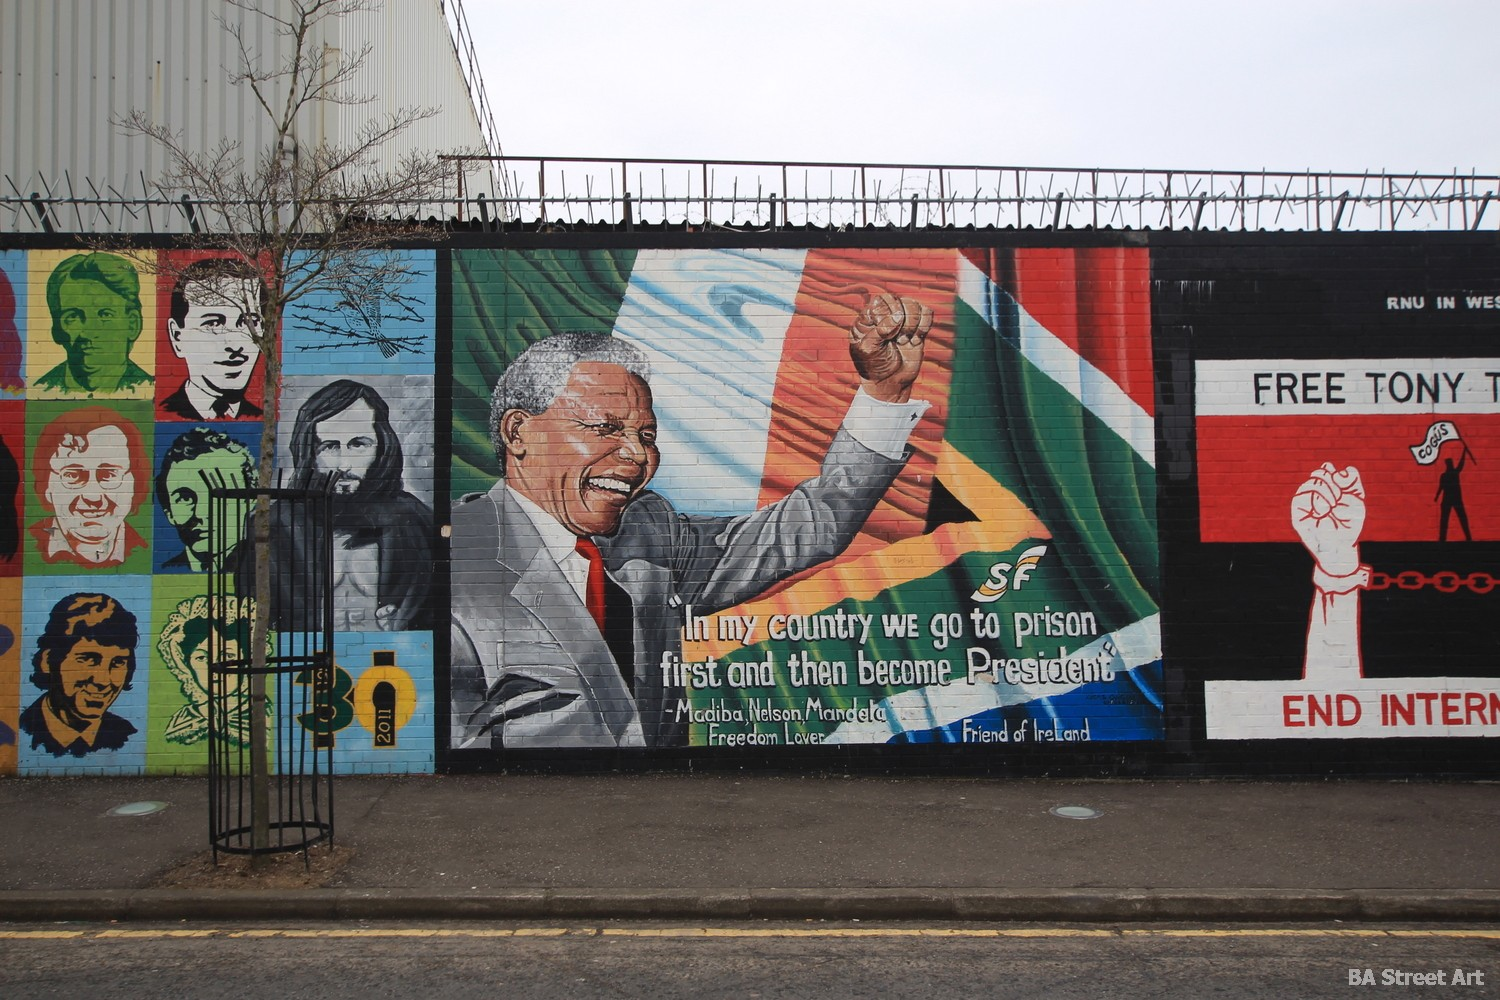 Nelson Mandela mural belfast peace wall northern ireland republican loyalist propaganda